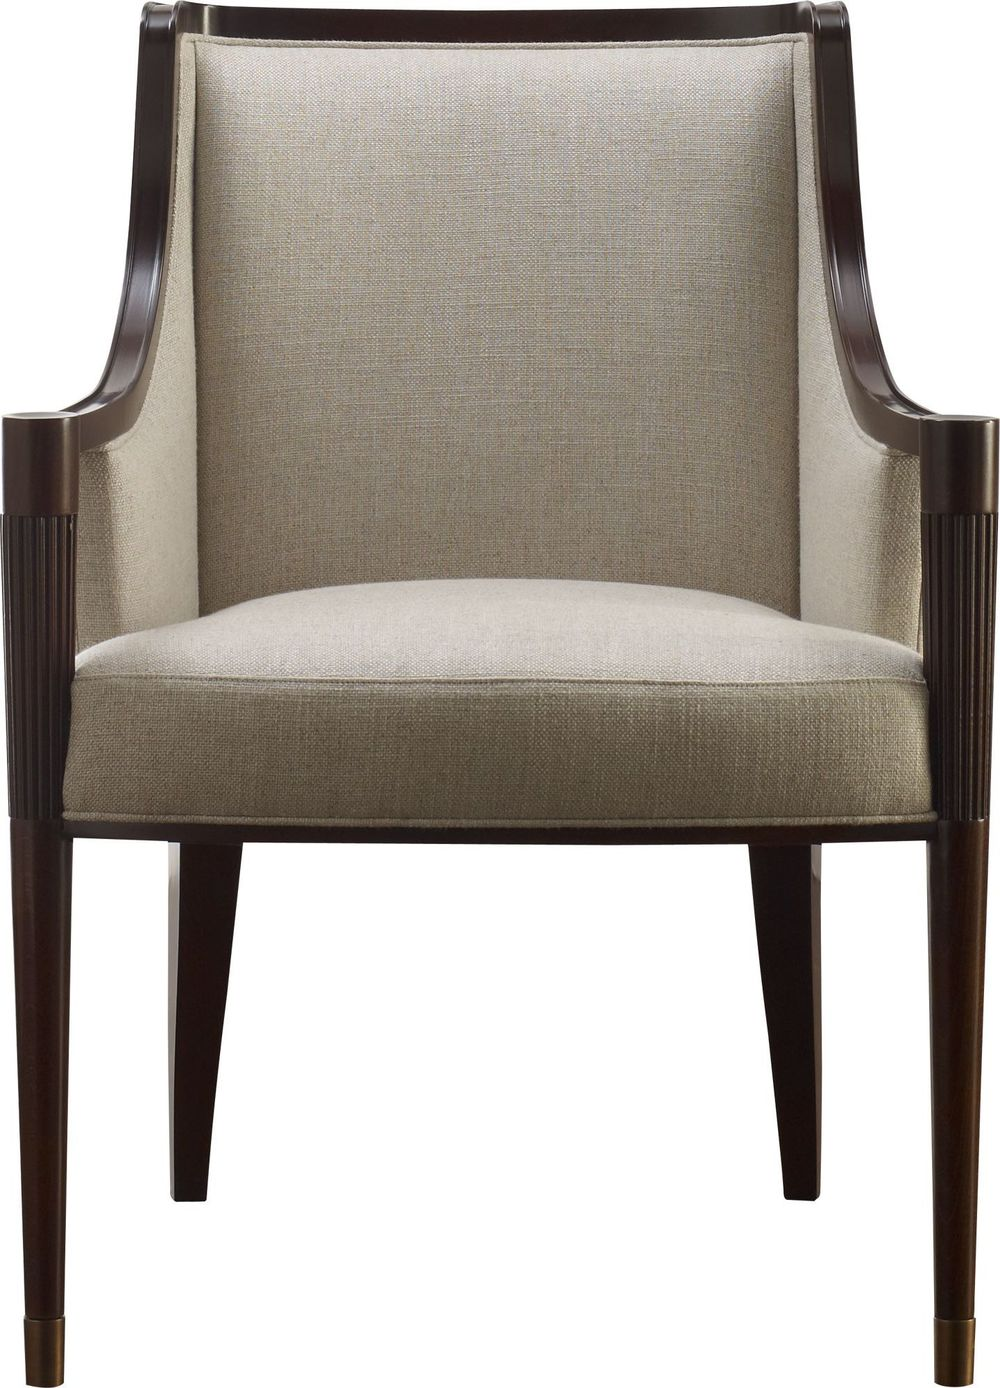 Baker Furniture - Signature Dining Arm Chair